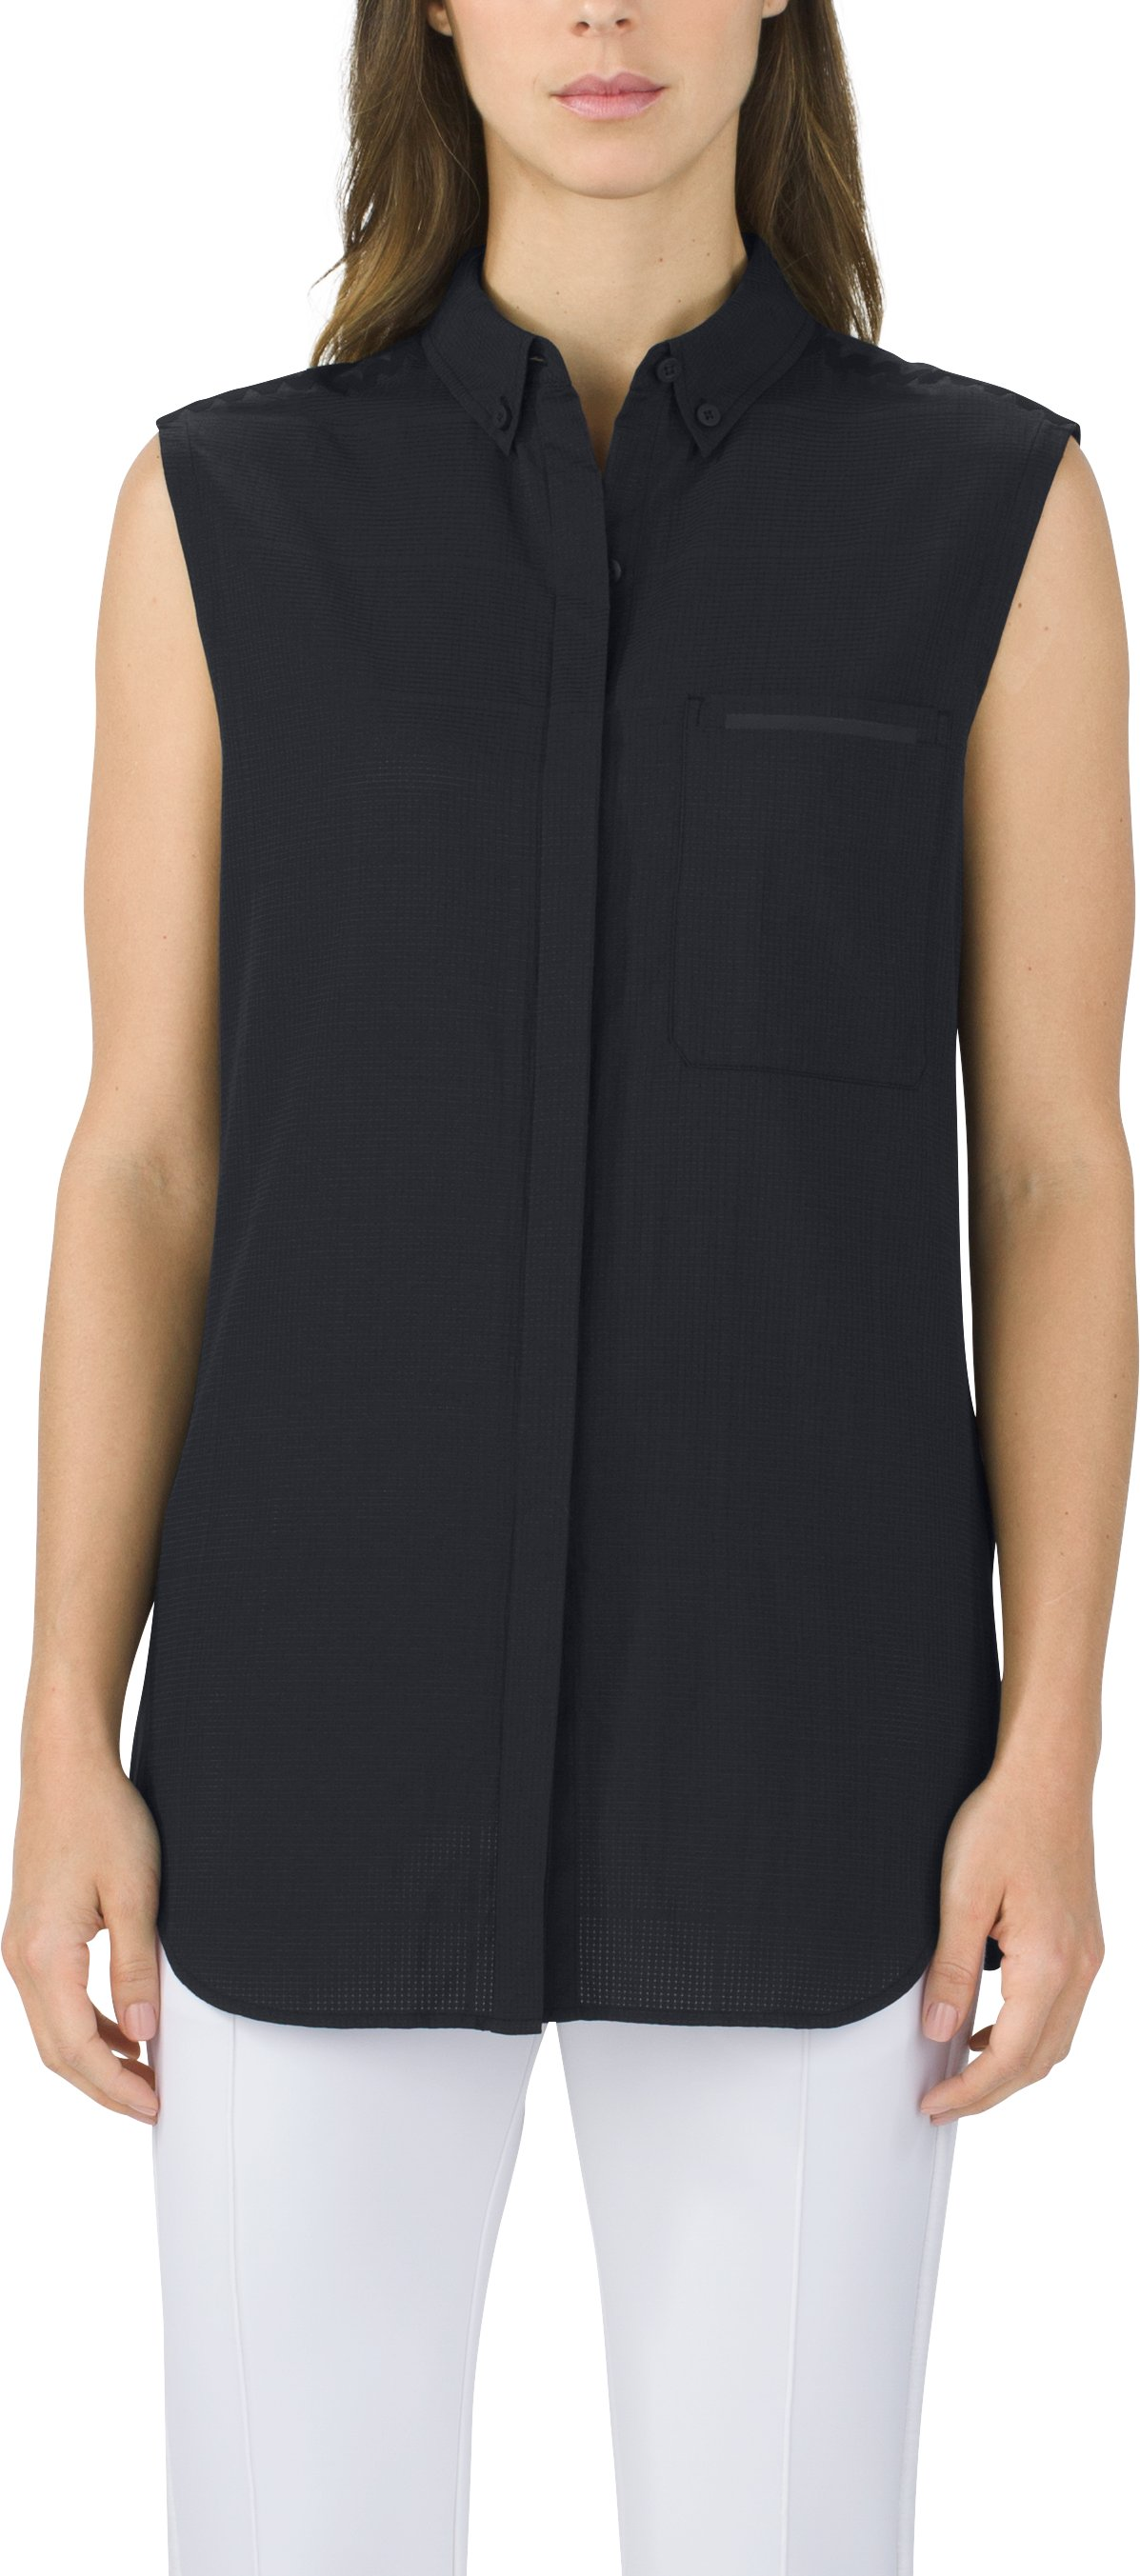 Sleeveless Shirt Solid, Black